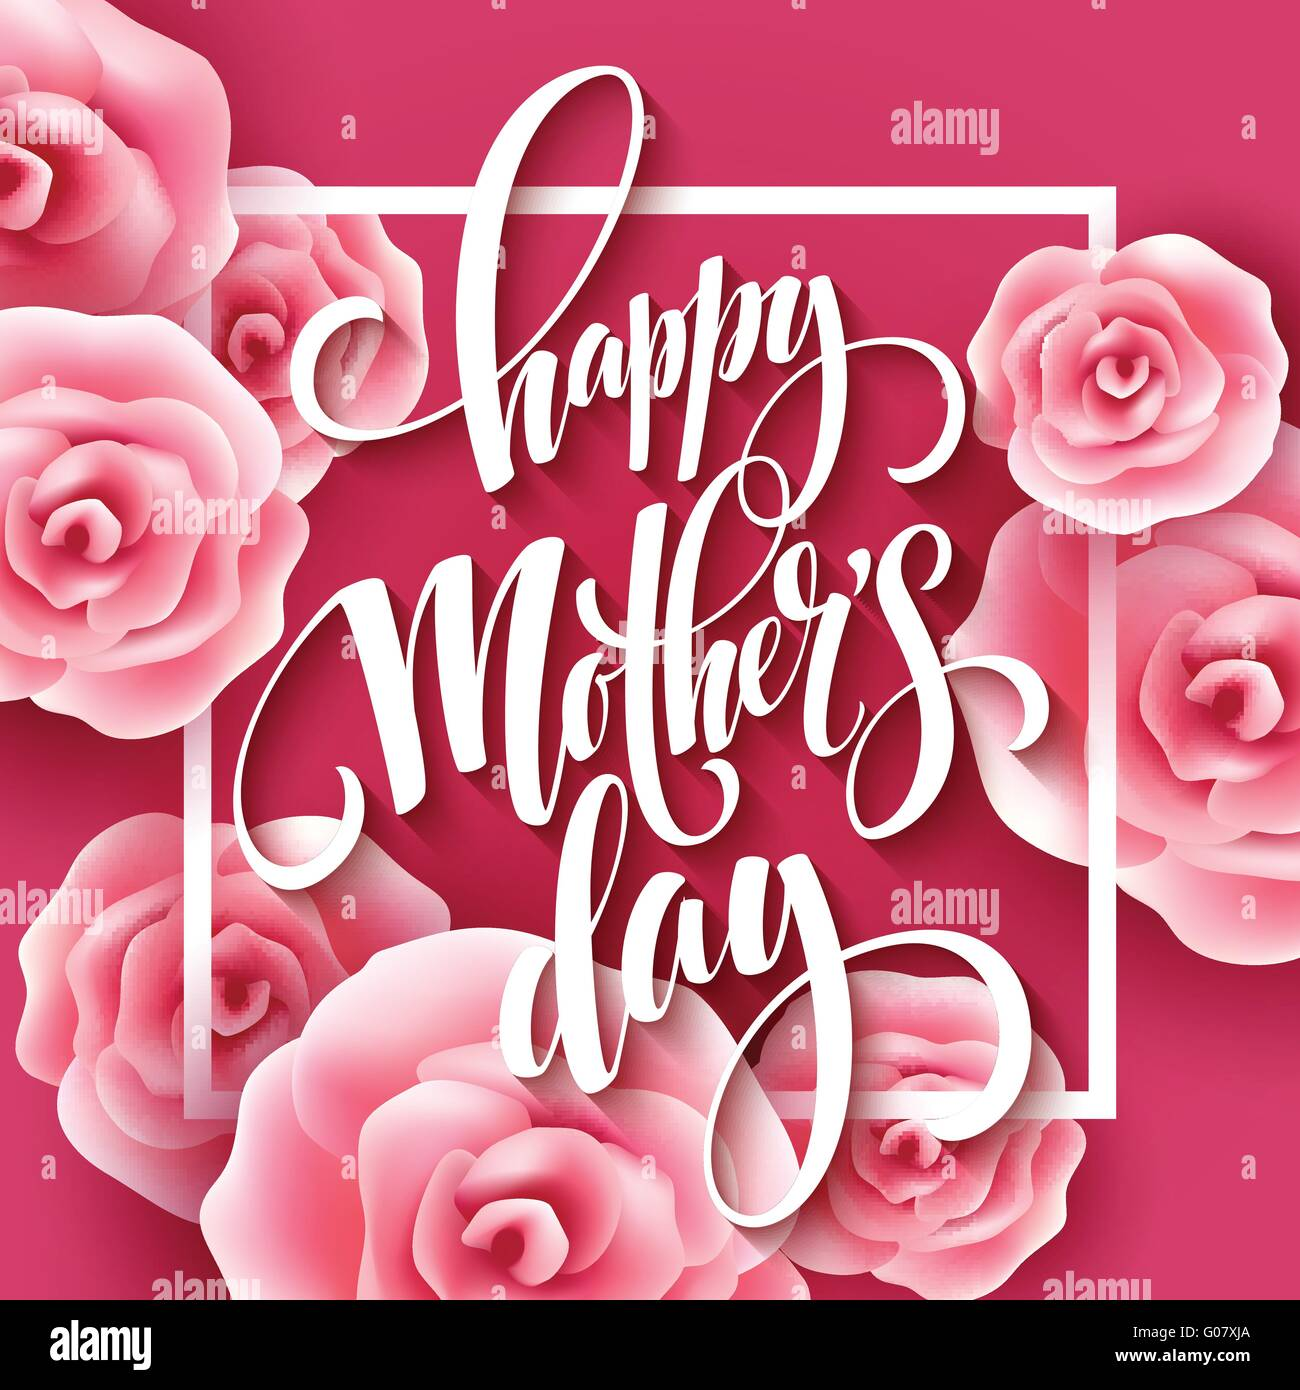 Happy mothers day lettering mothers day greeting card with happy mothers day lettering mothers day greeting card with blooming pink rose flowers vector illustration kristyandbryce Image collections